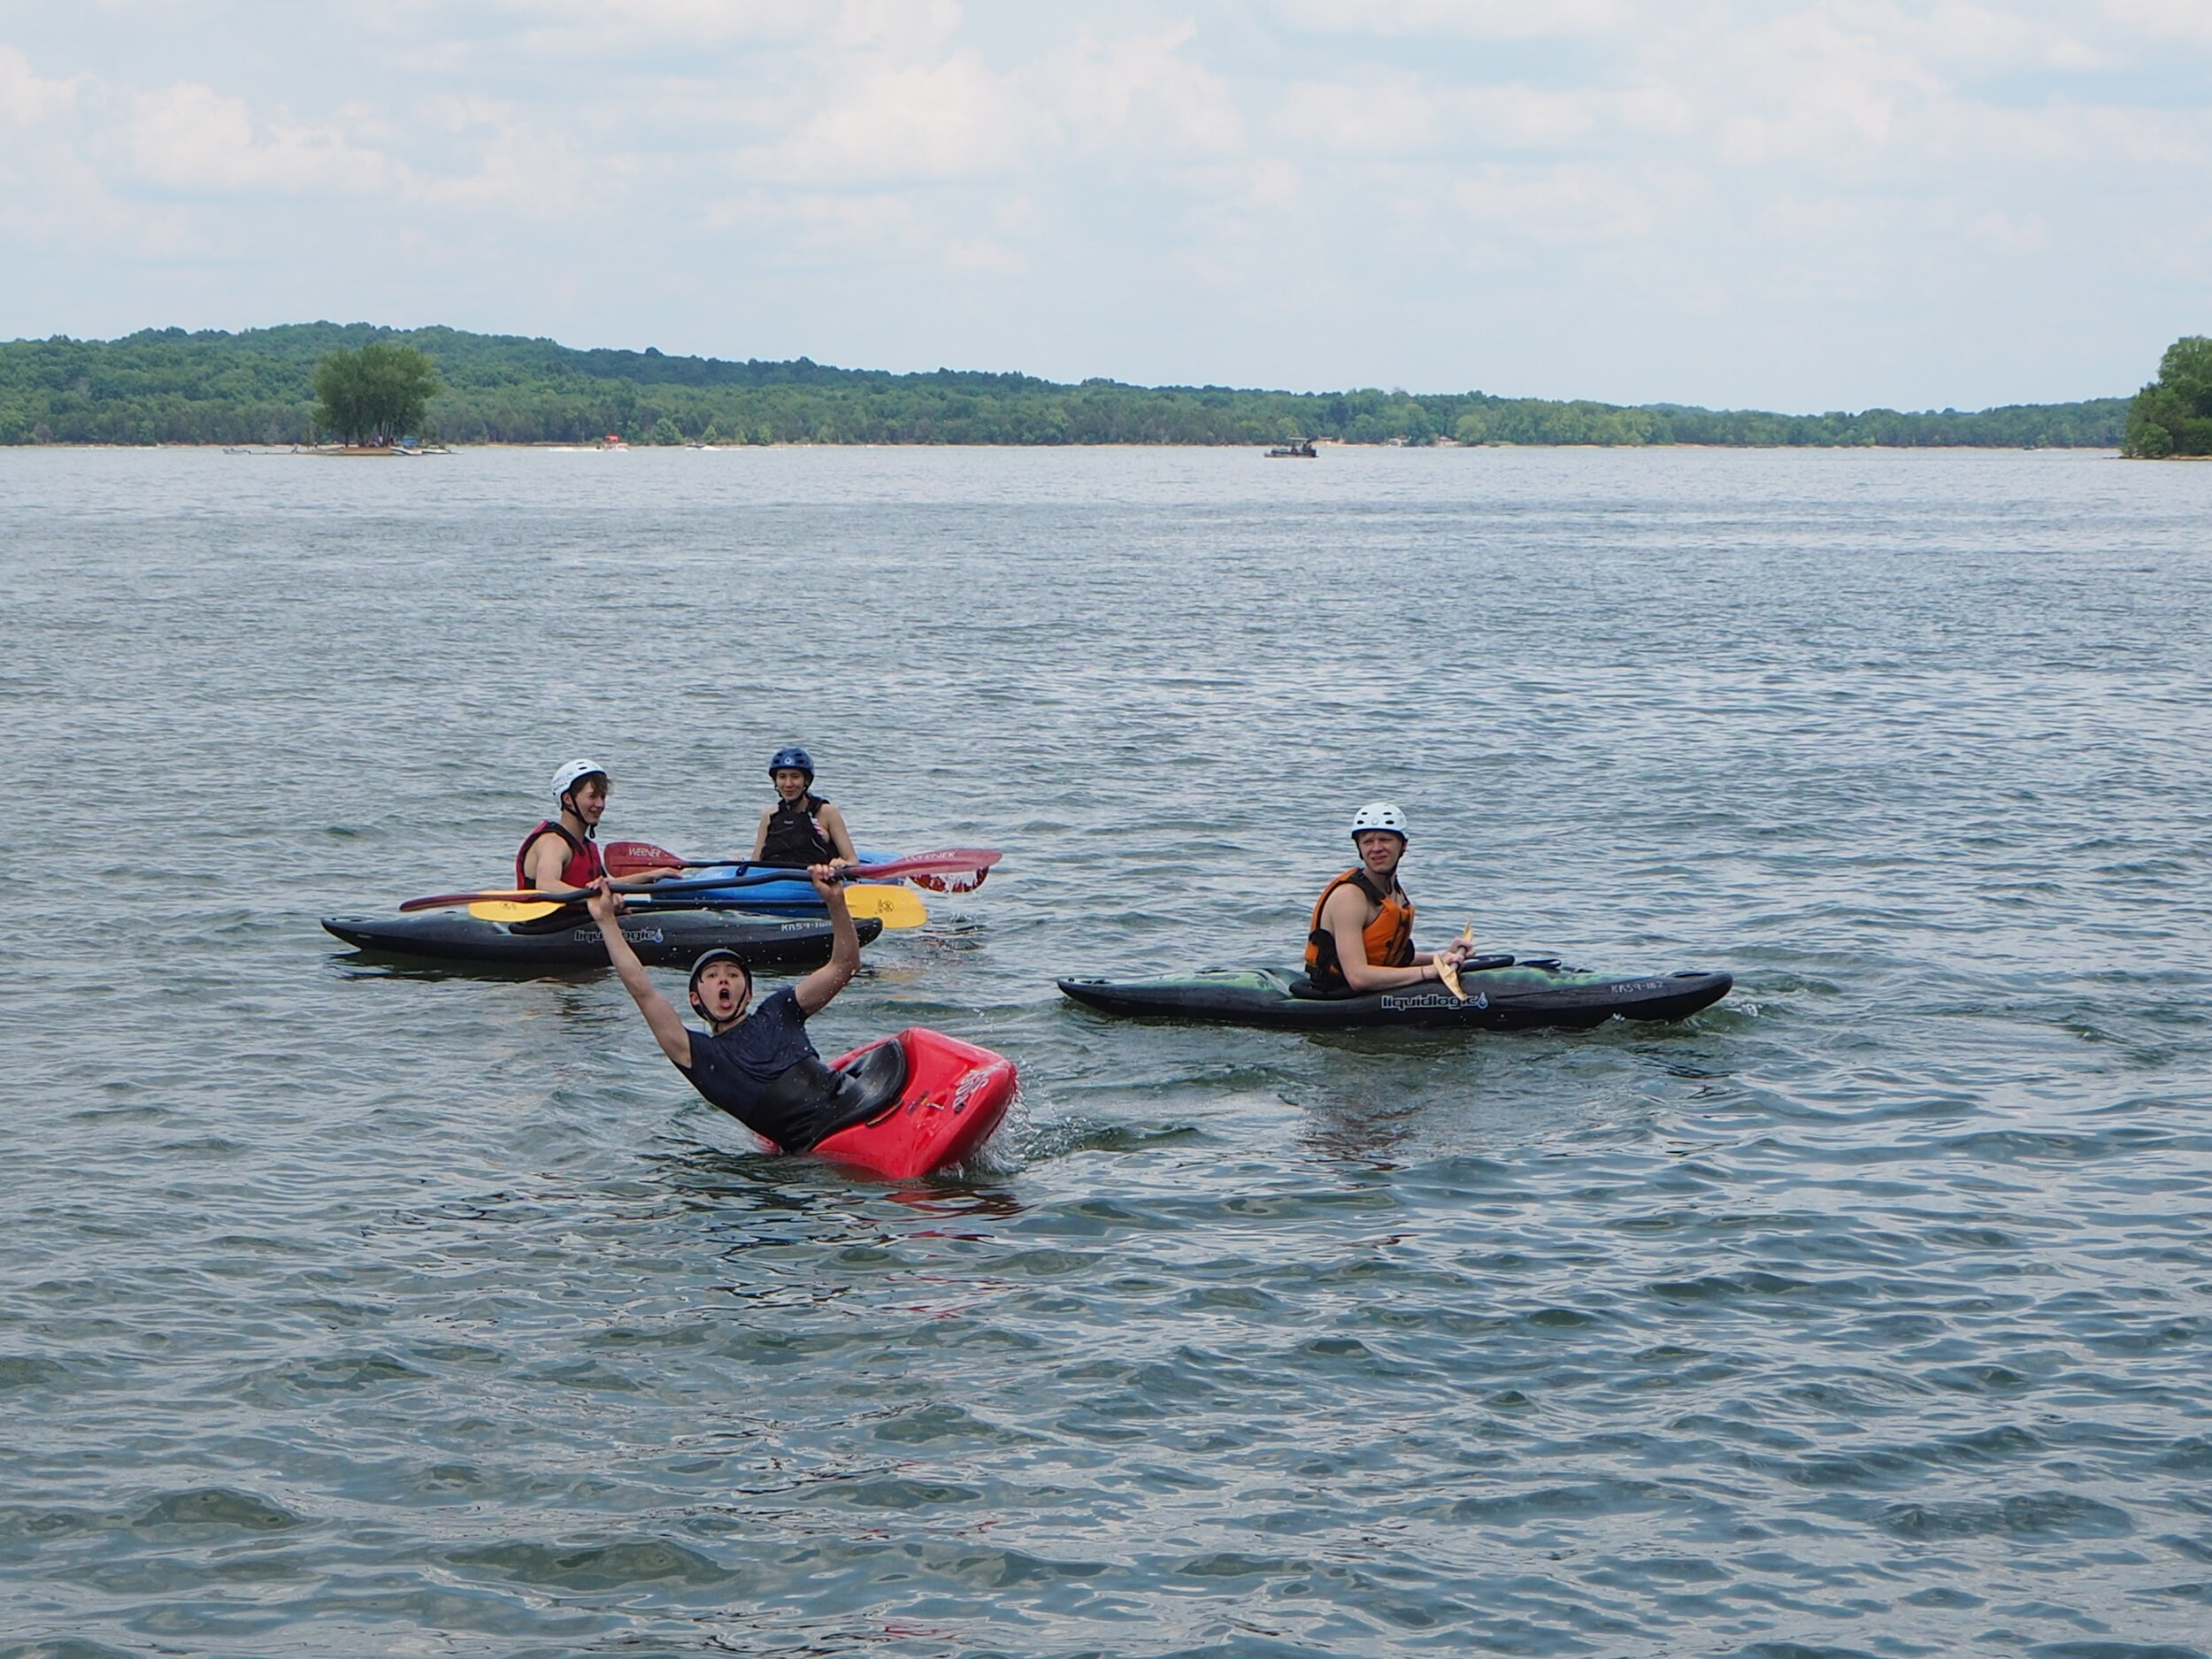 Some of our SyBBUREites exploring the great outdoors by kayaking at Percy Priest!